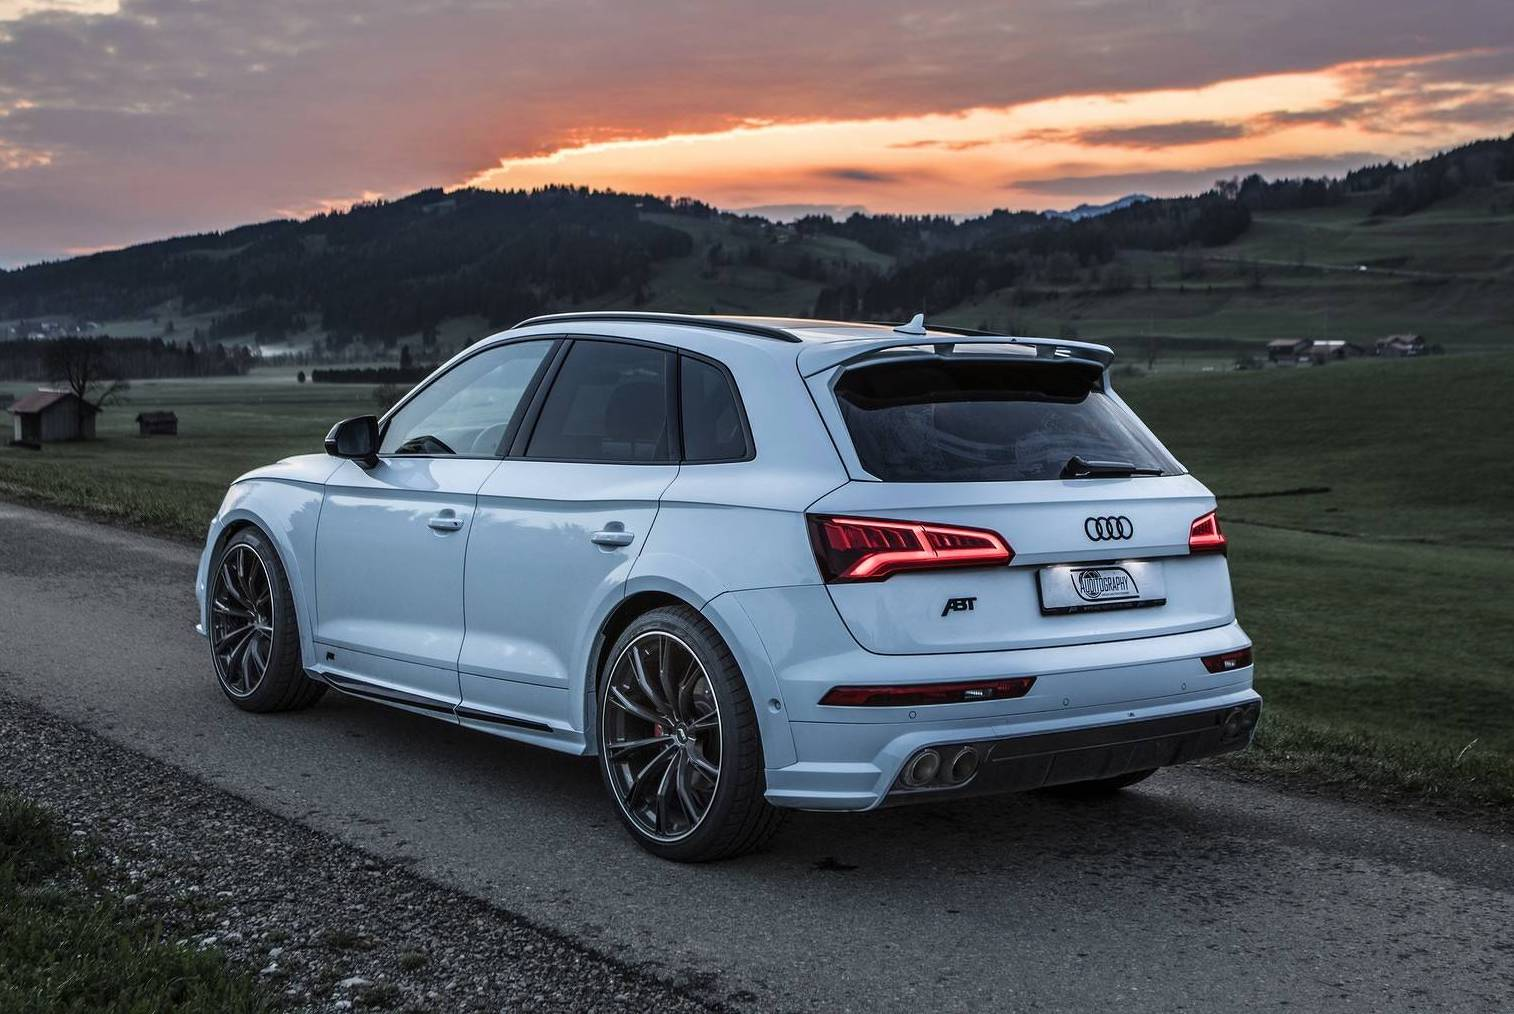 2018 Audi Sq5 Abt Rear